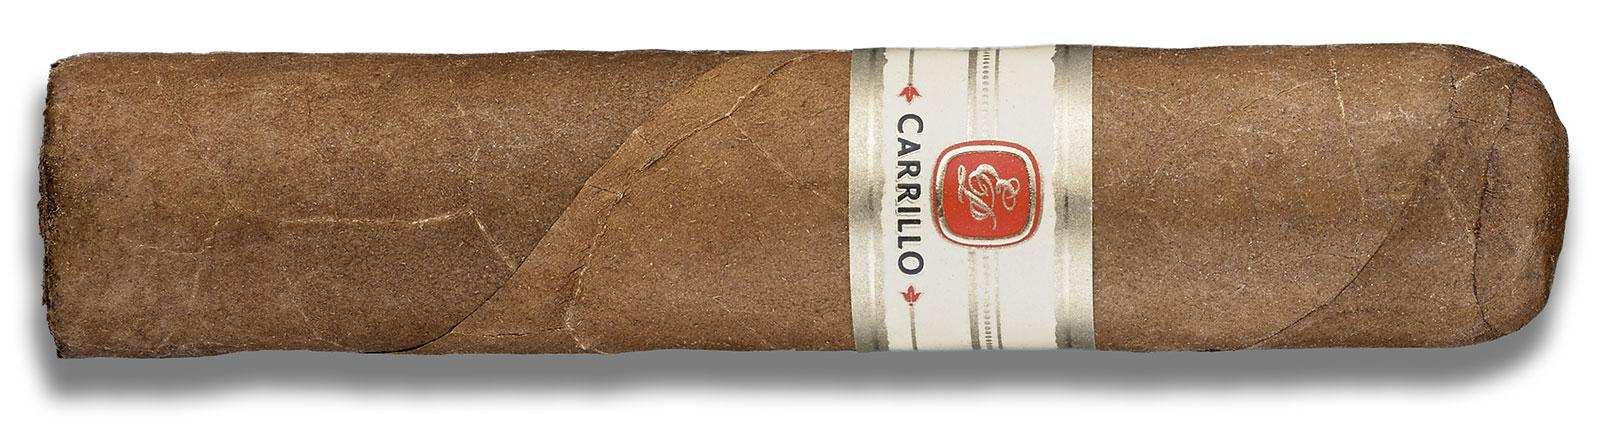 E.P. Carrillo Interlude Natural Rothschild Jr.